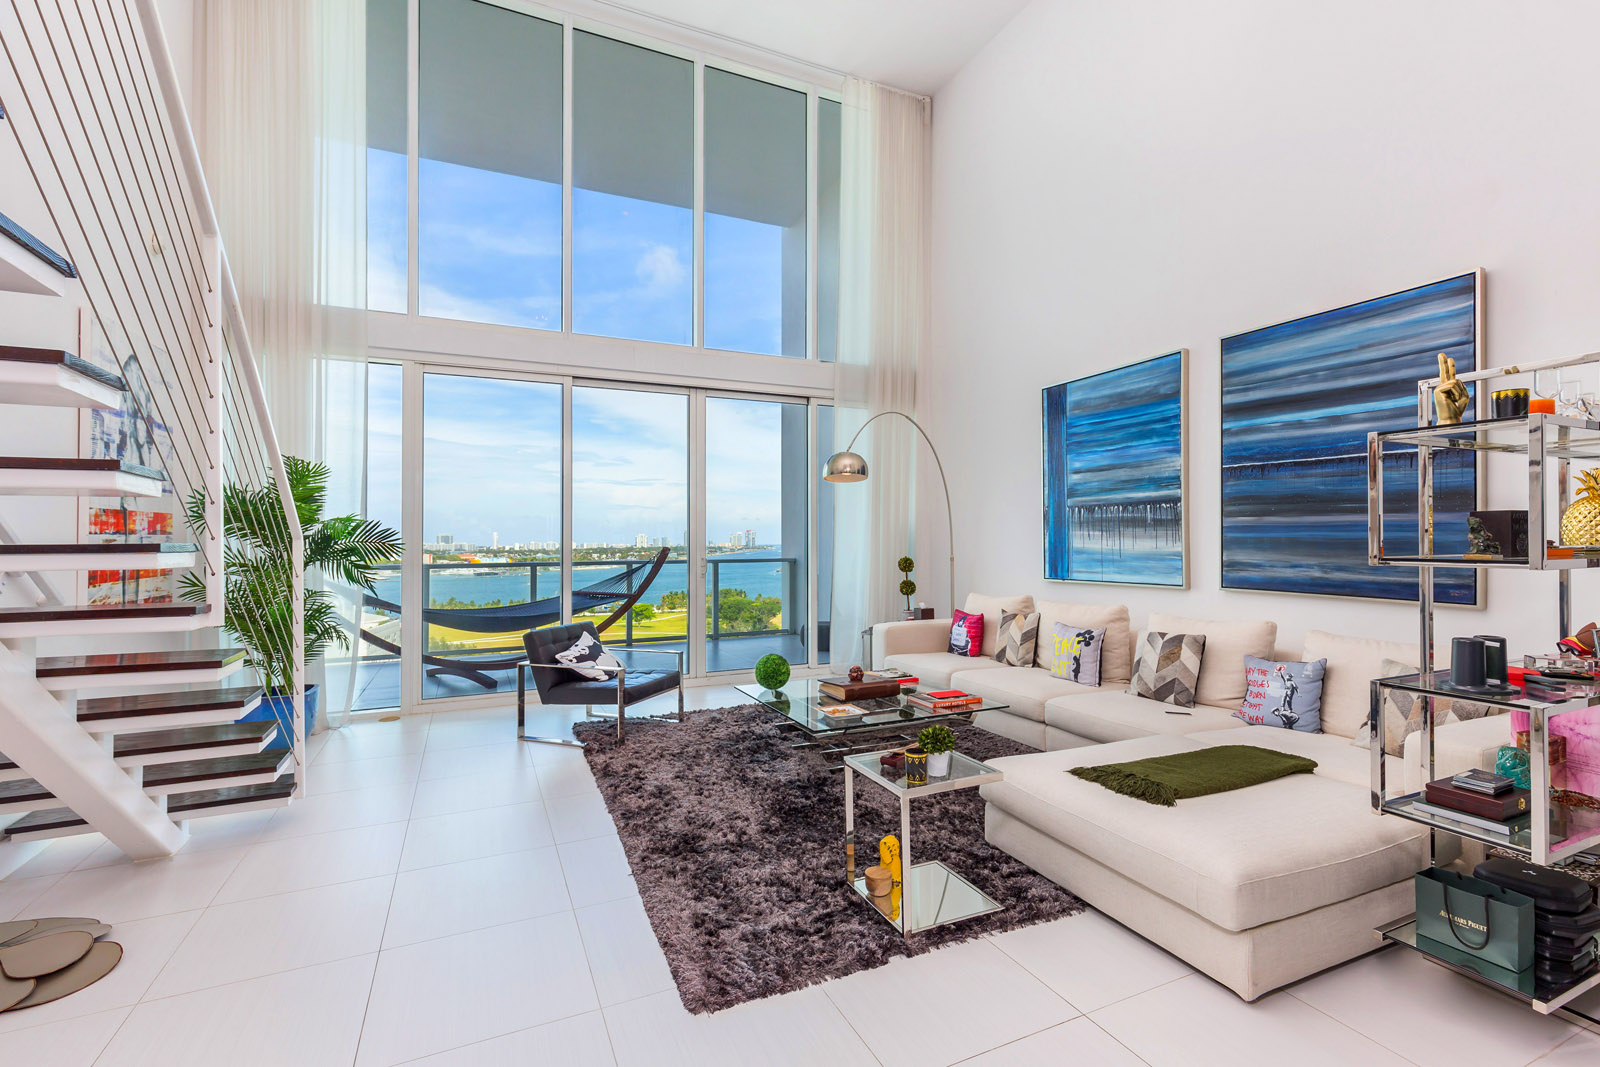 Featured Listing: Step Inside A Modern, Luxe Loft In Downtown Miami With Dropdead Beautiful Views of Biscayne Bay